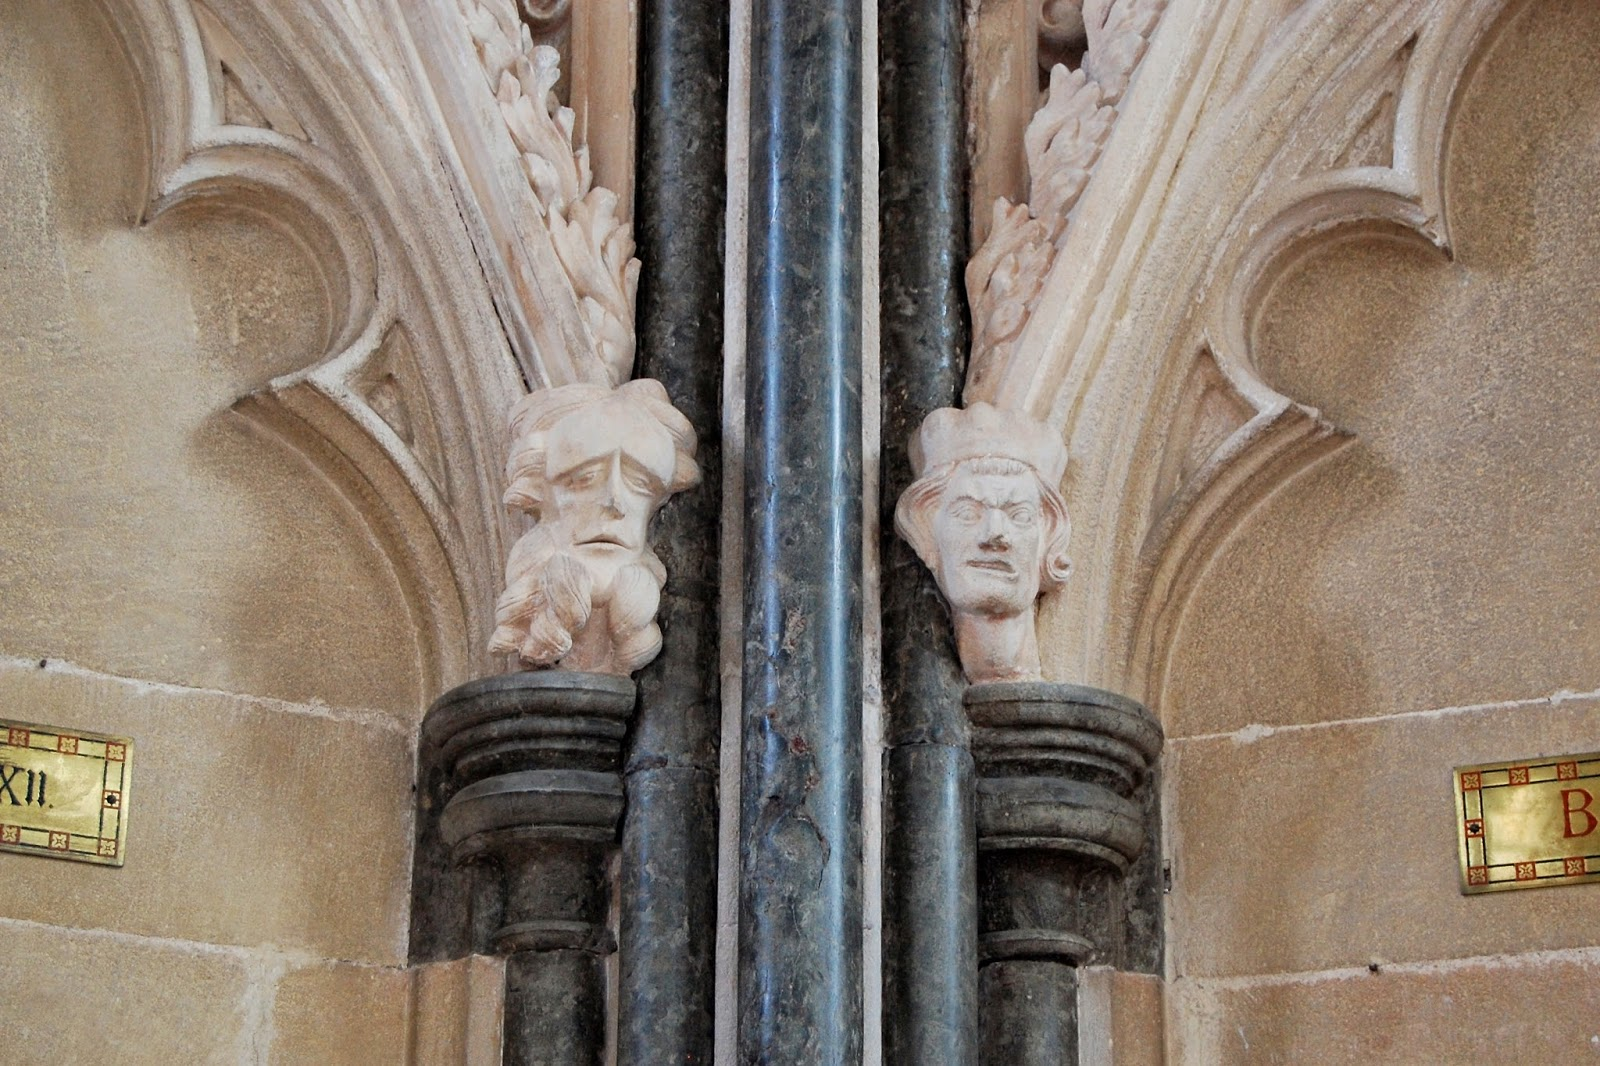 More carved heads in the Chapter House